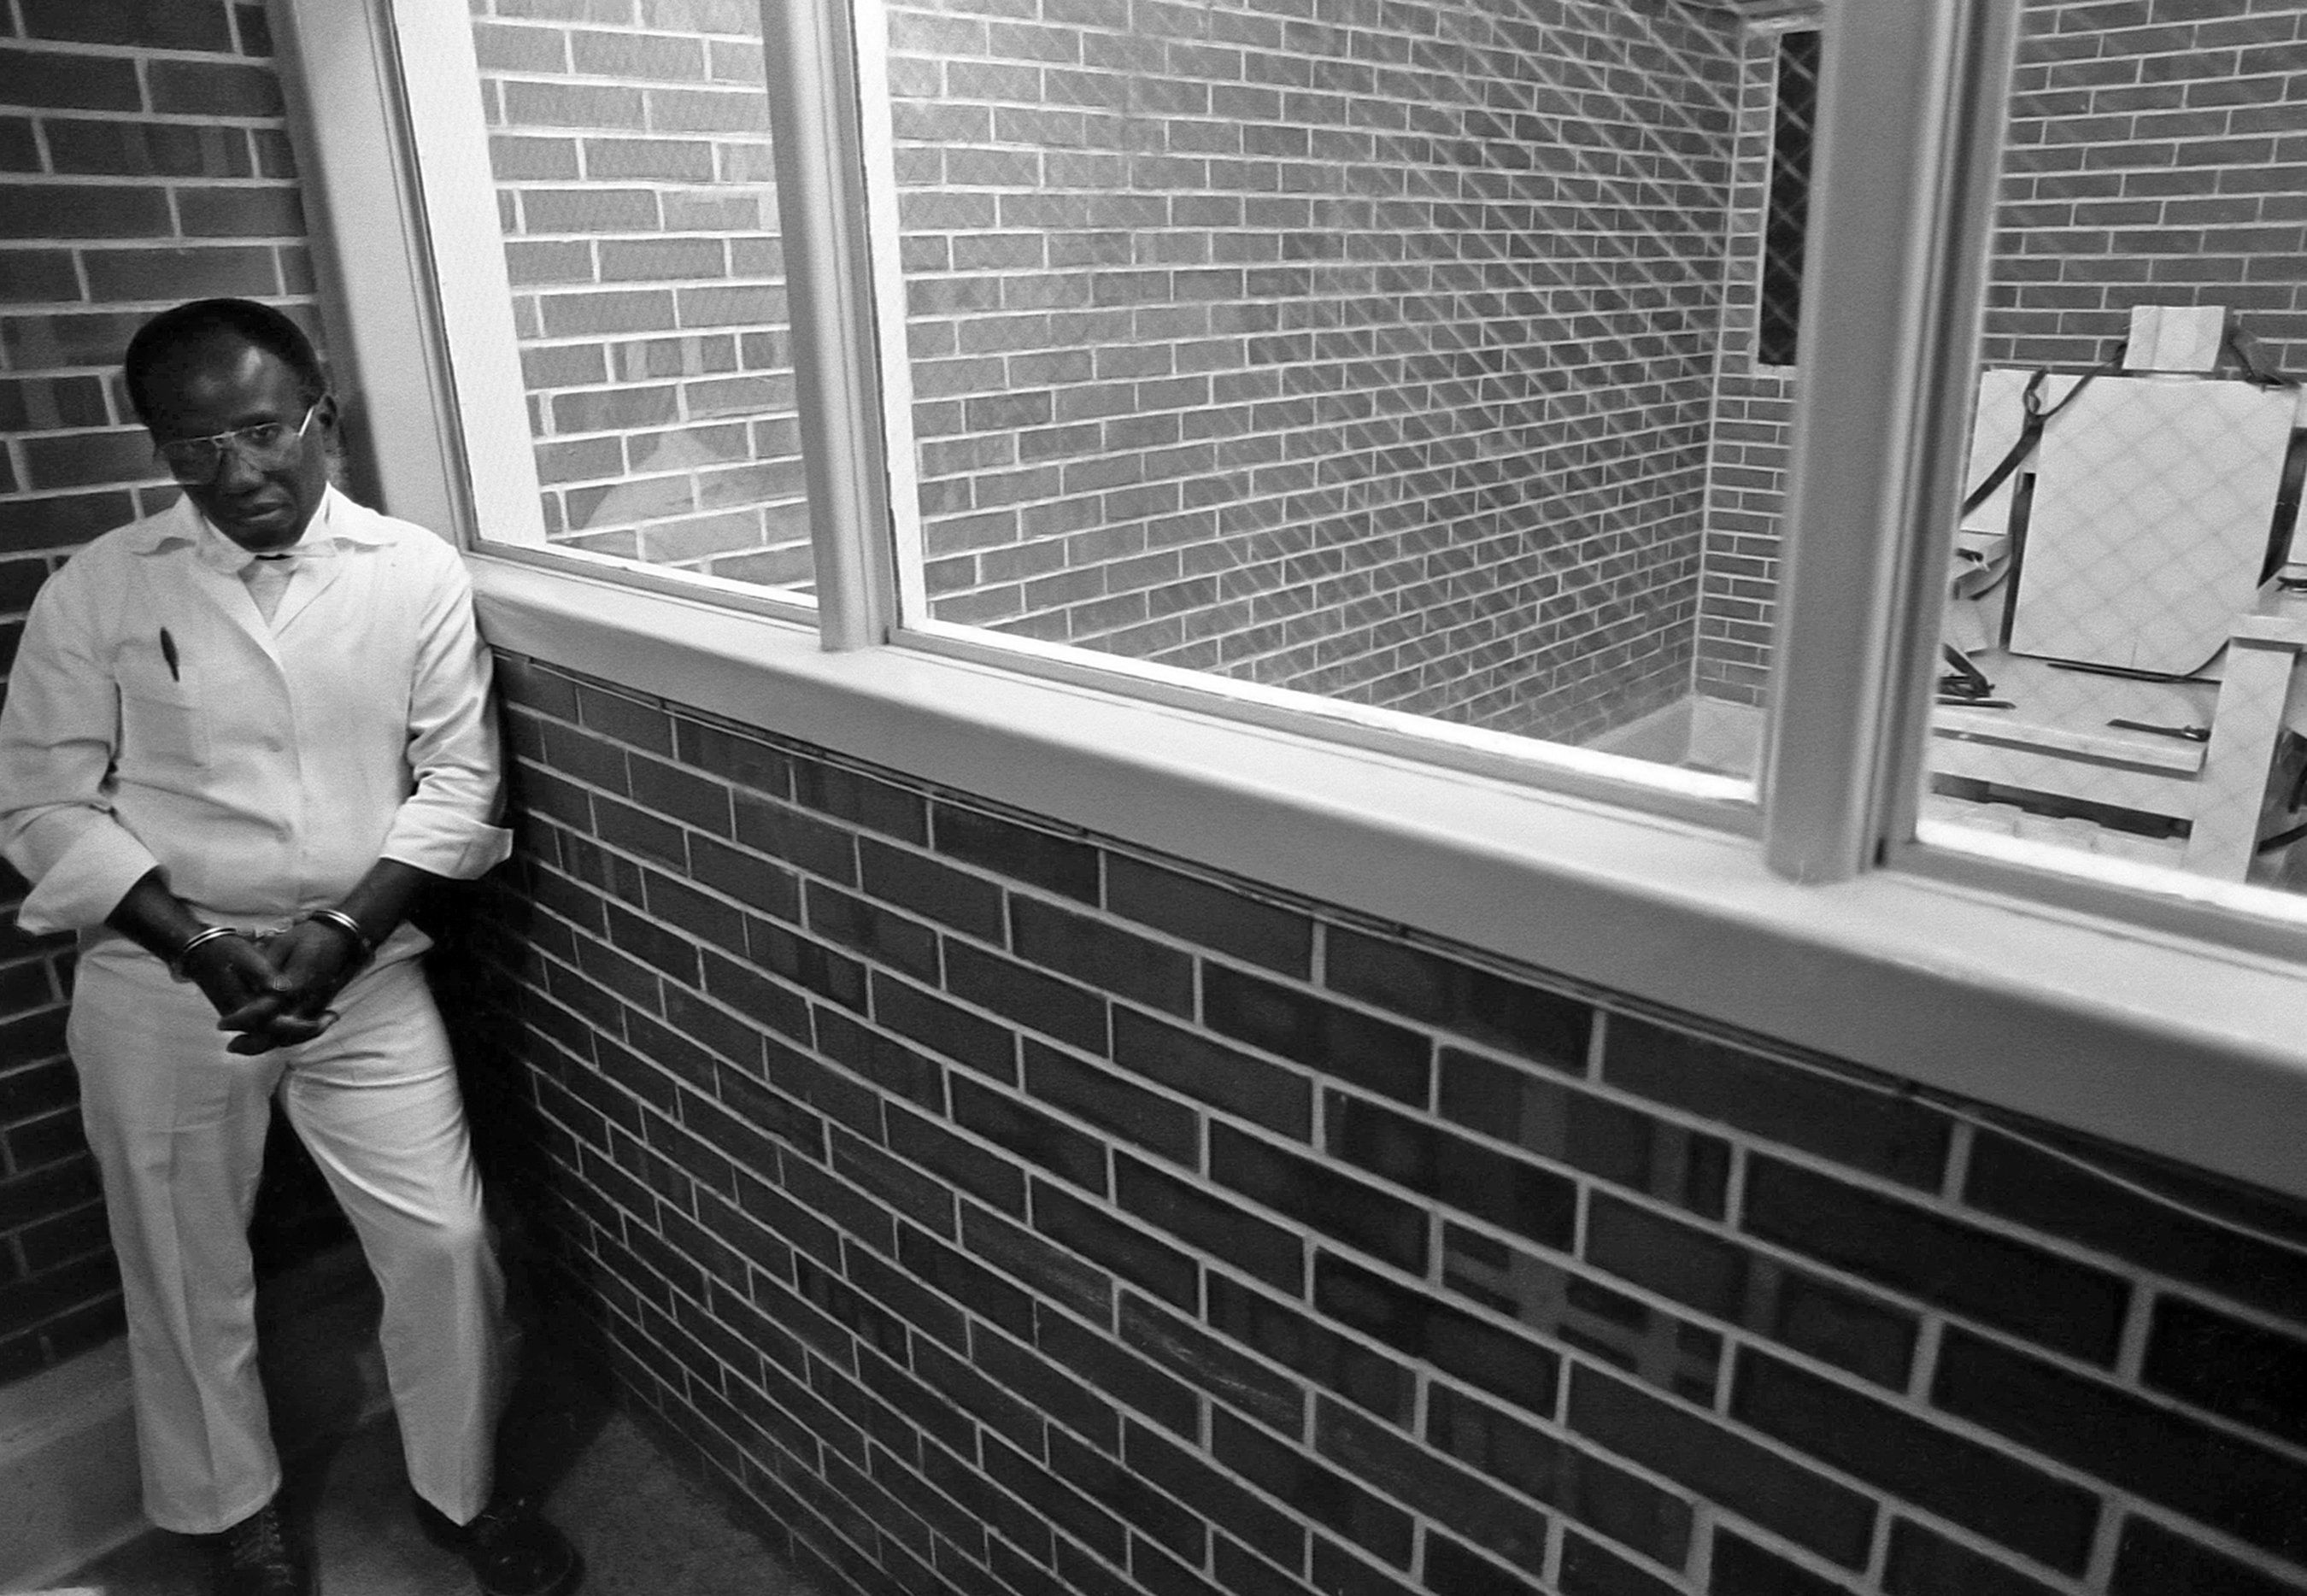 Death row convict Herbert Richardson, before his execution on August 18, 1989.